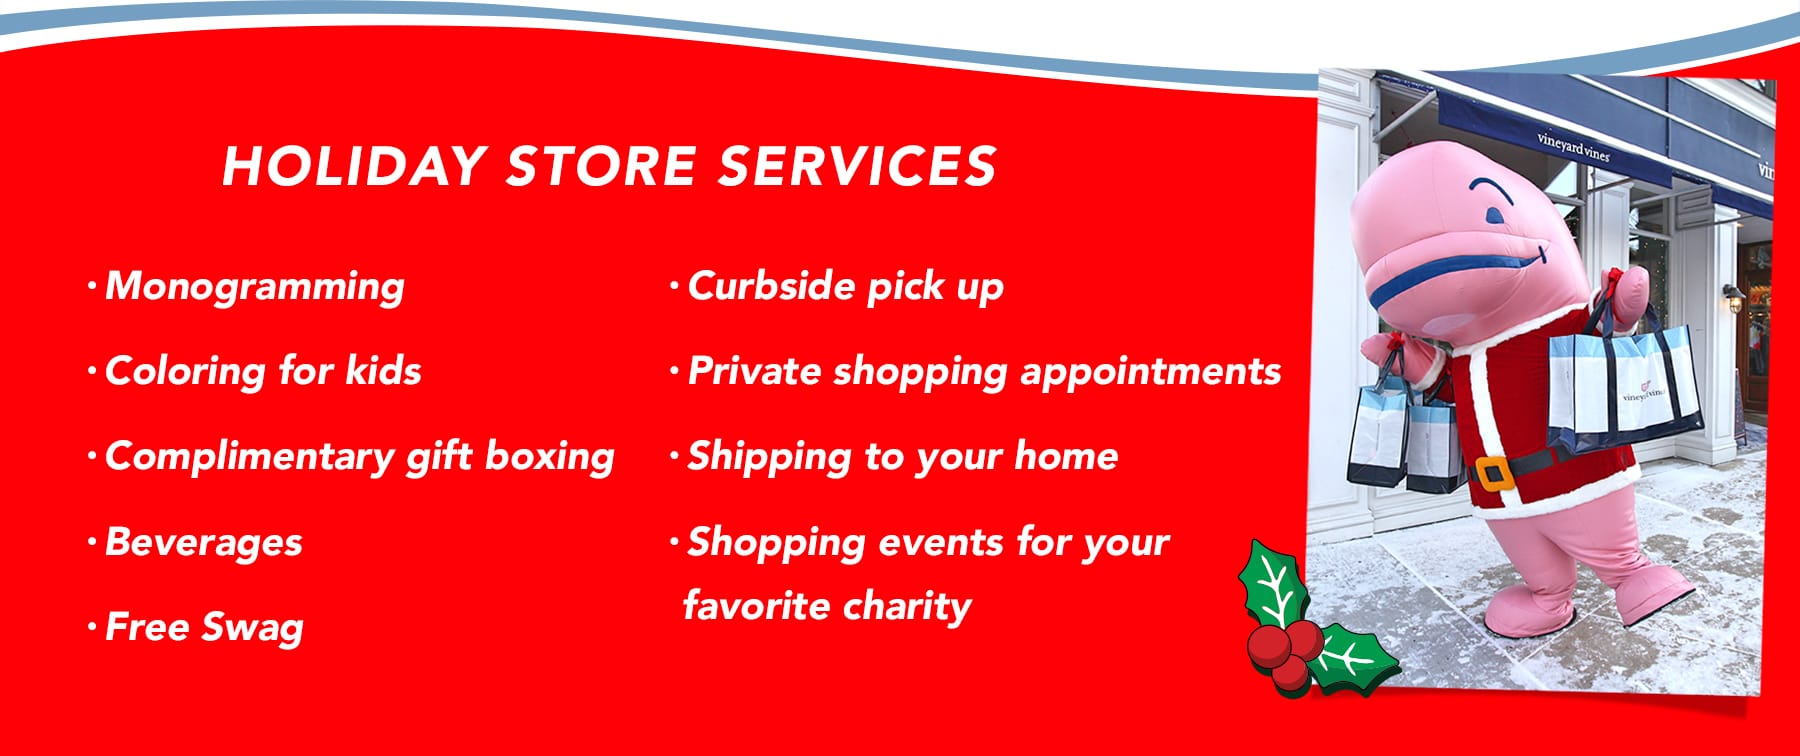 Holiday Store Services: Monogramming, Coloring for kids, Complimentary gift boxing, Beverages, Exclusive stickers, accessories & more, Curbside pick up, Private shopping appointments, Shipping to your home, Shopping events for your favorite charity